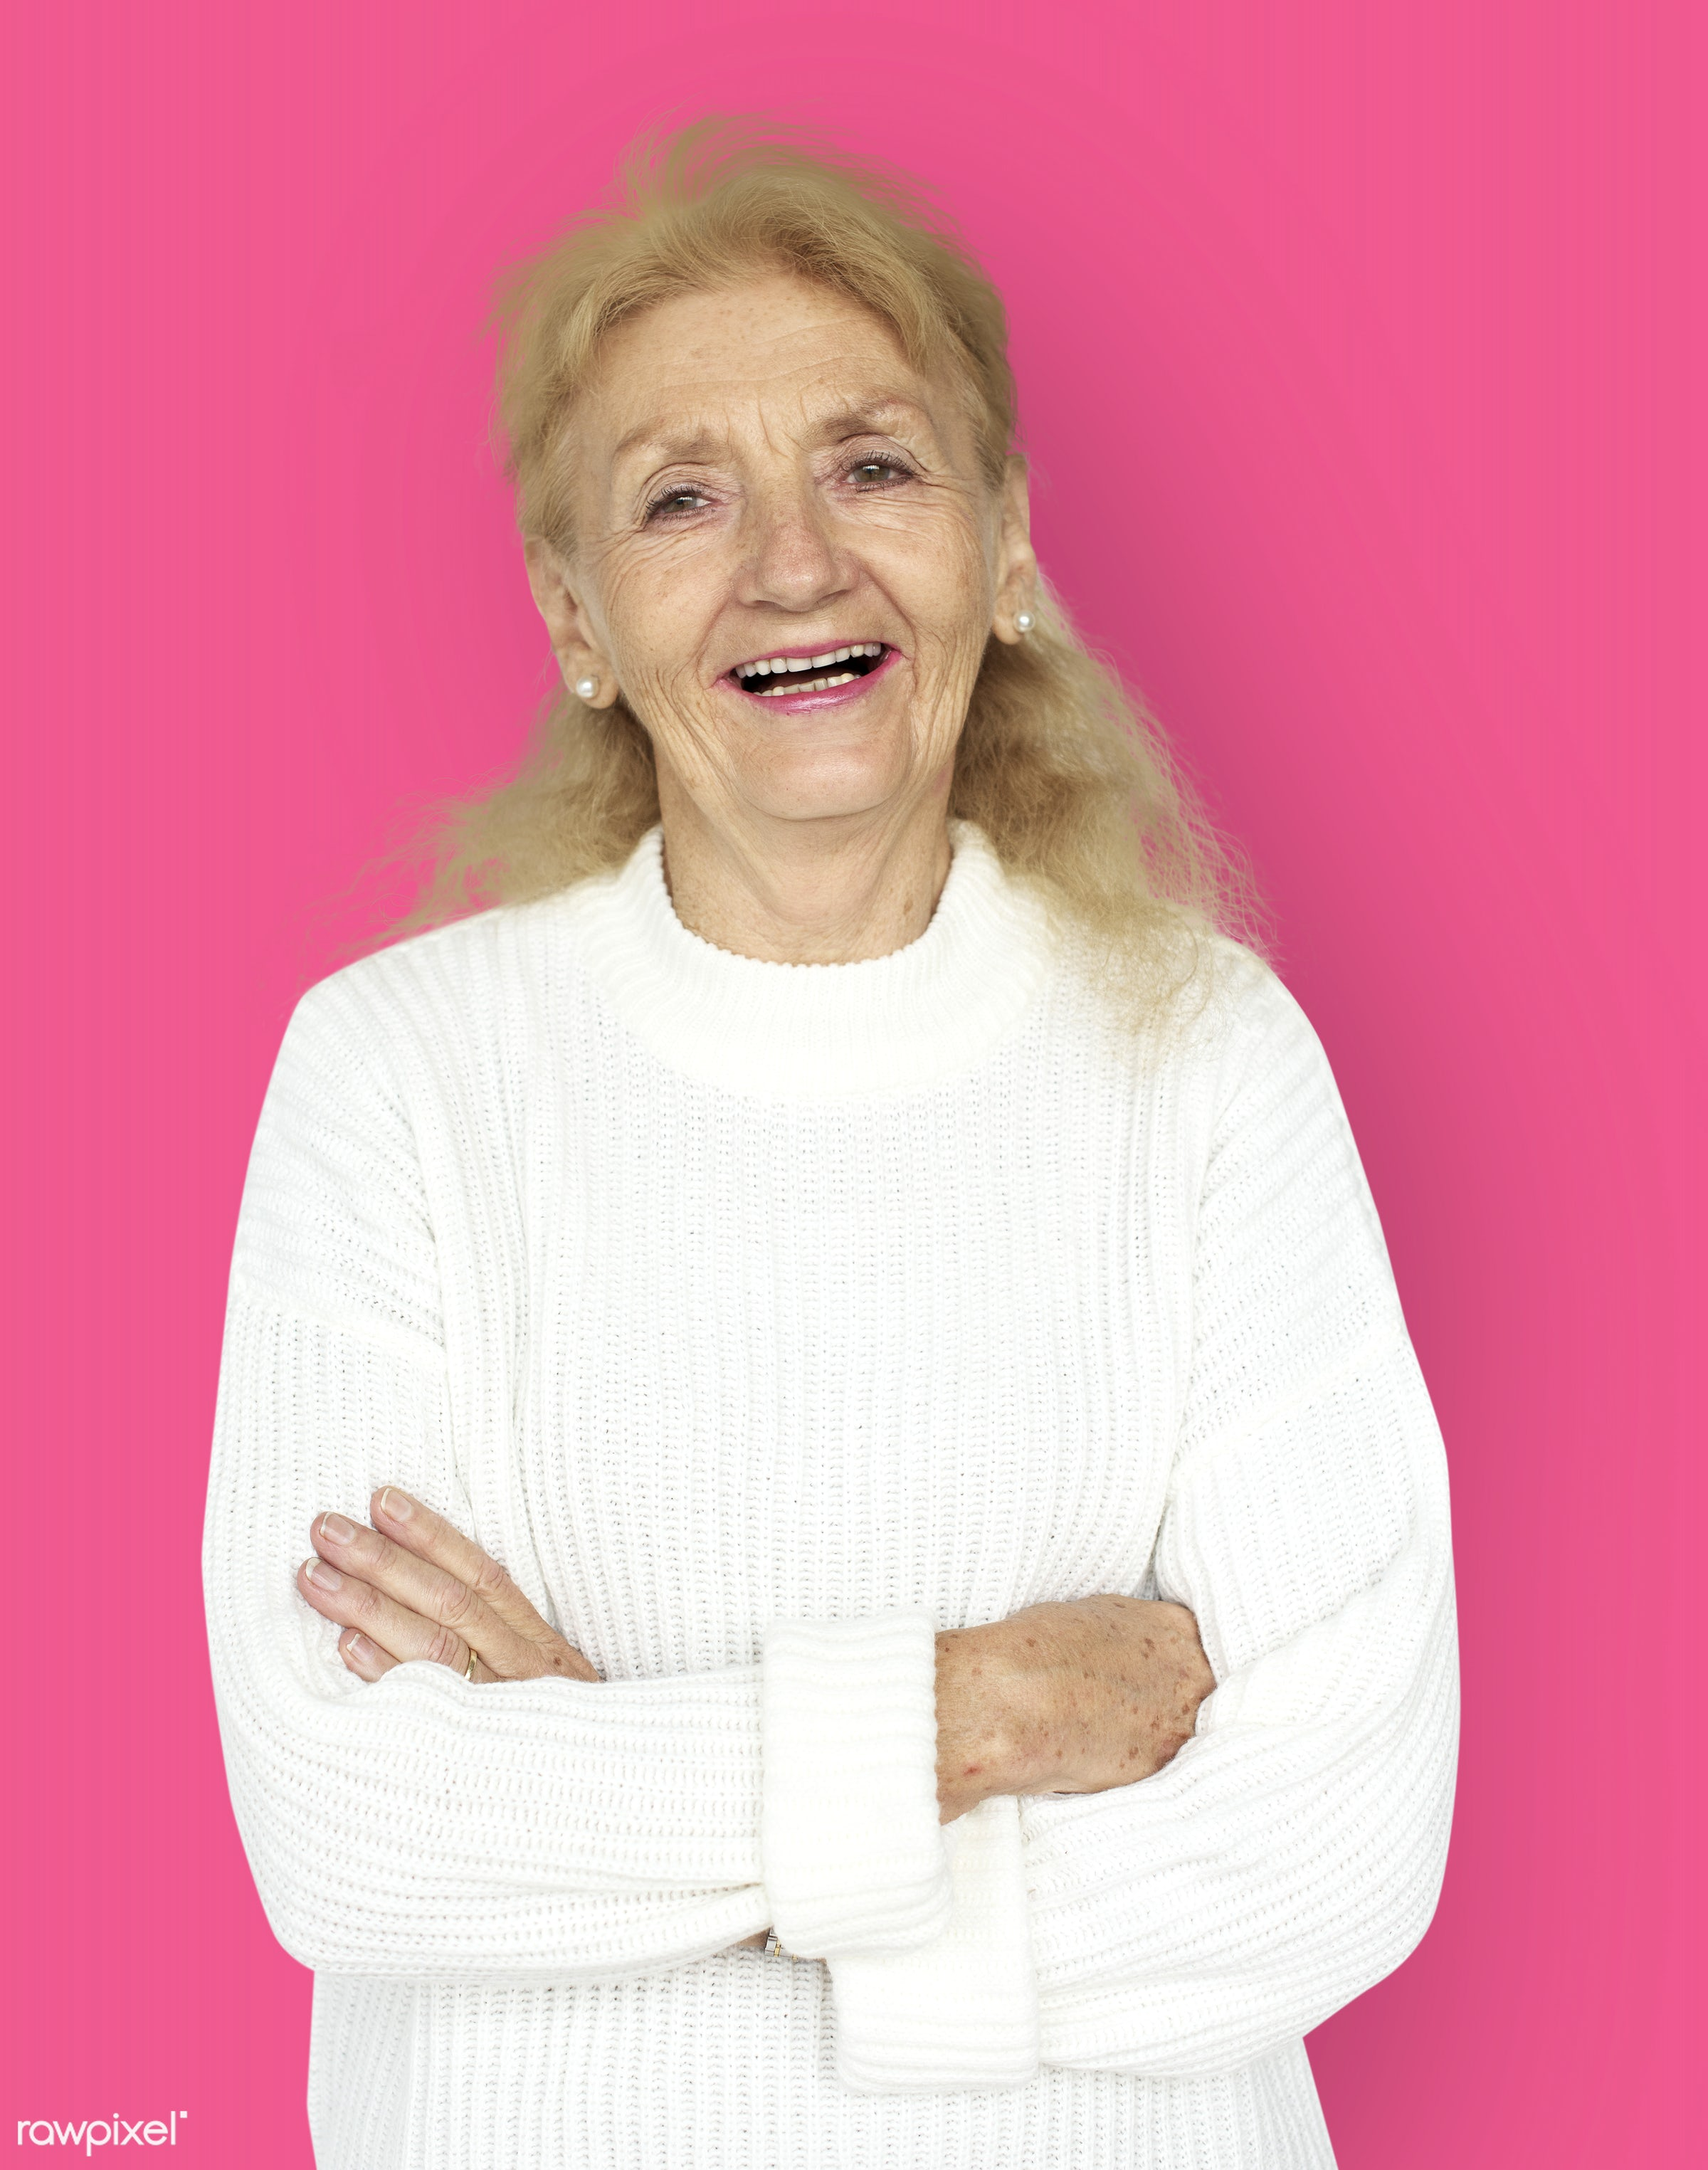 expression, studio, person, freedom, relax, people, caucasian, retirement, woman, lifestyle, pink, westerner, positive,...